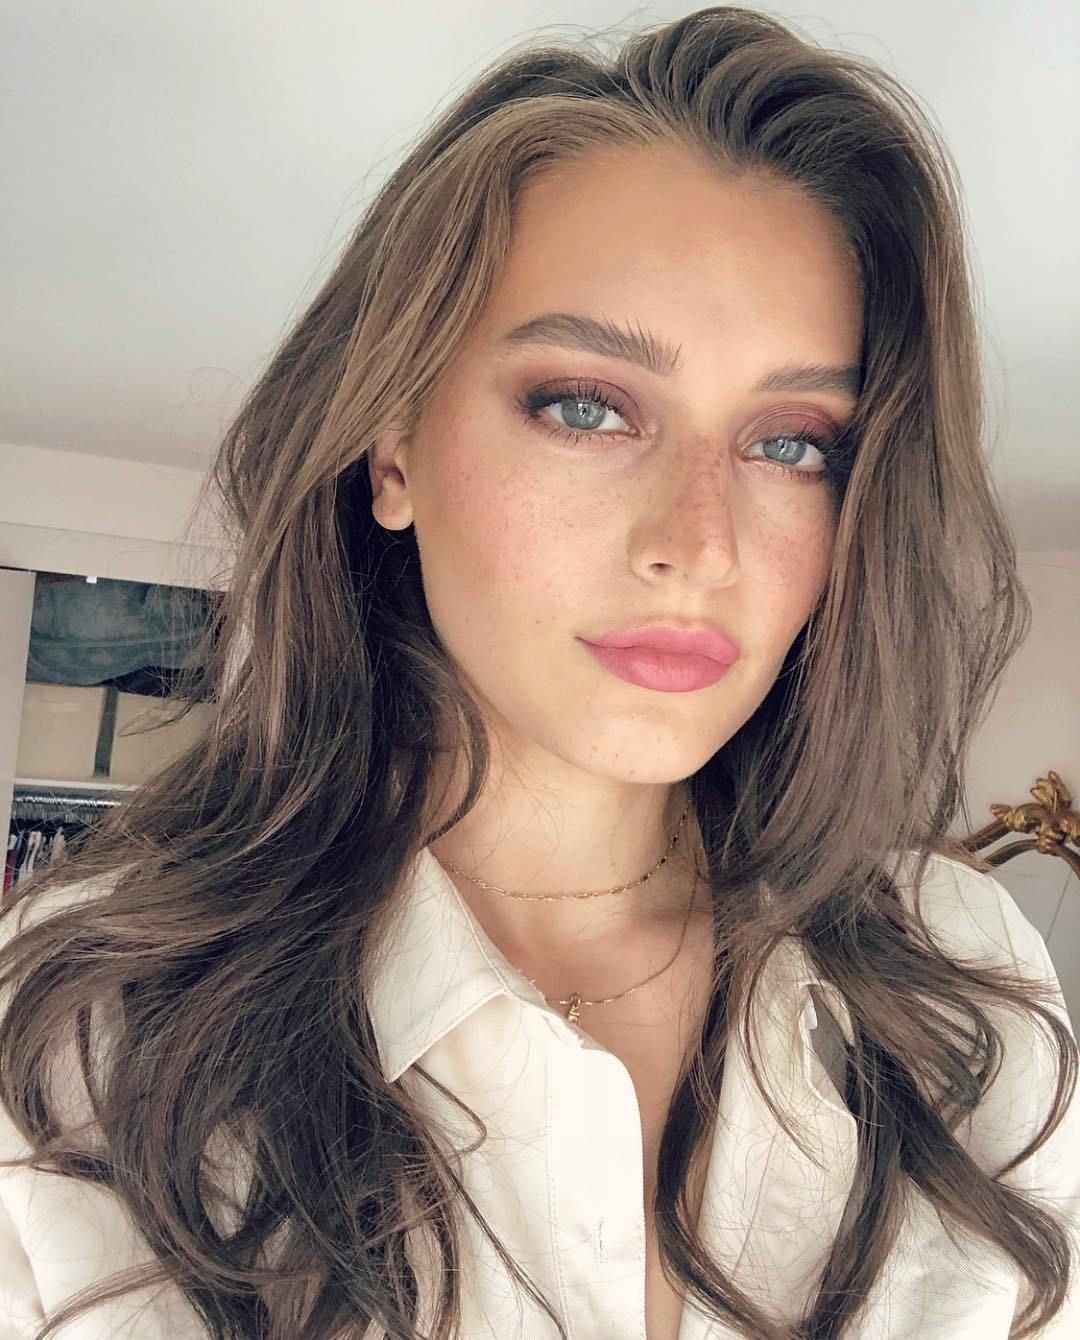 Topless Hacked Jessica Clements naked photo 2017